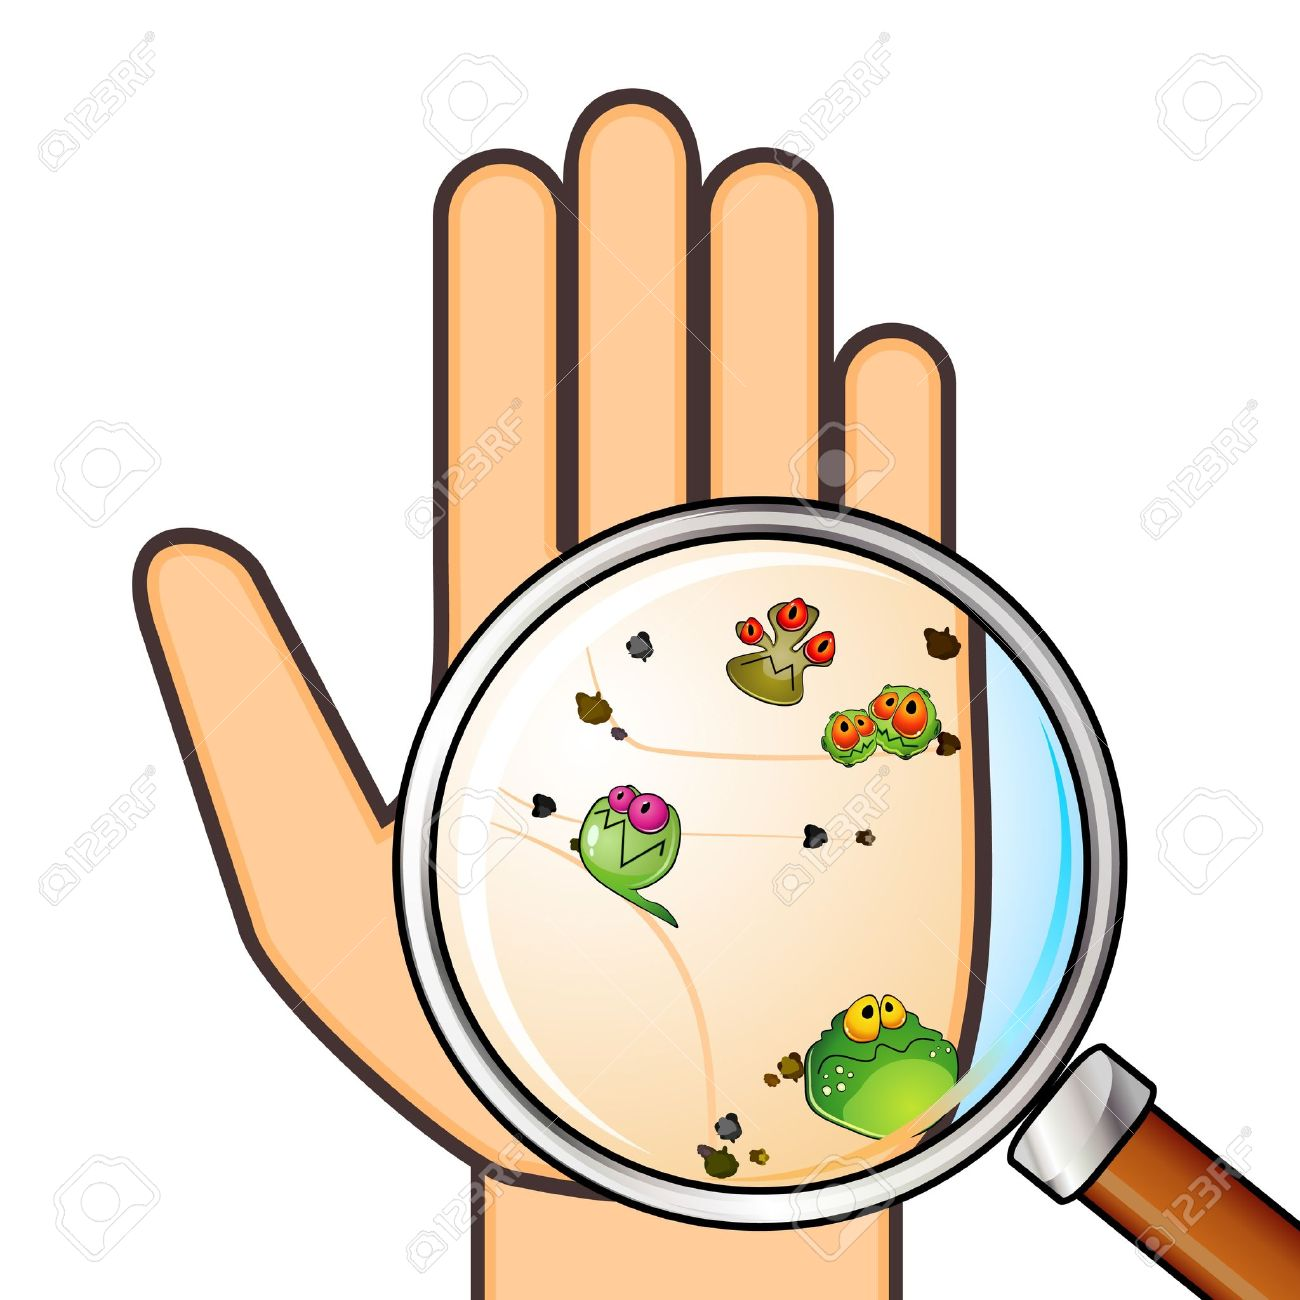 Microbe clipart #9, Download drawings